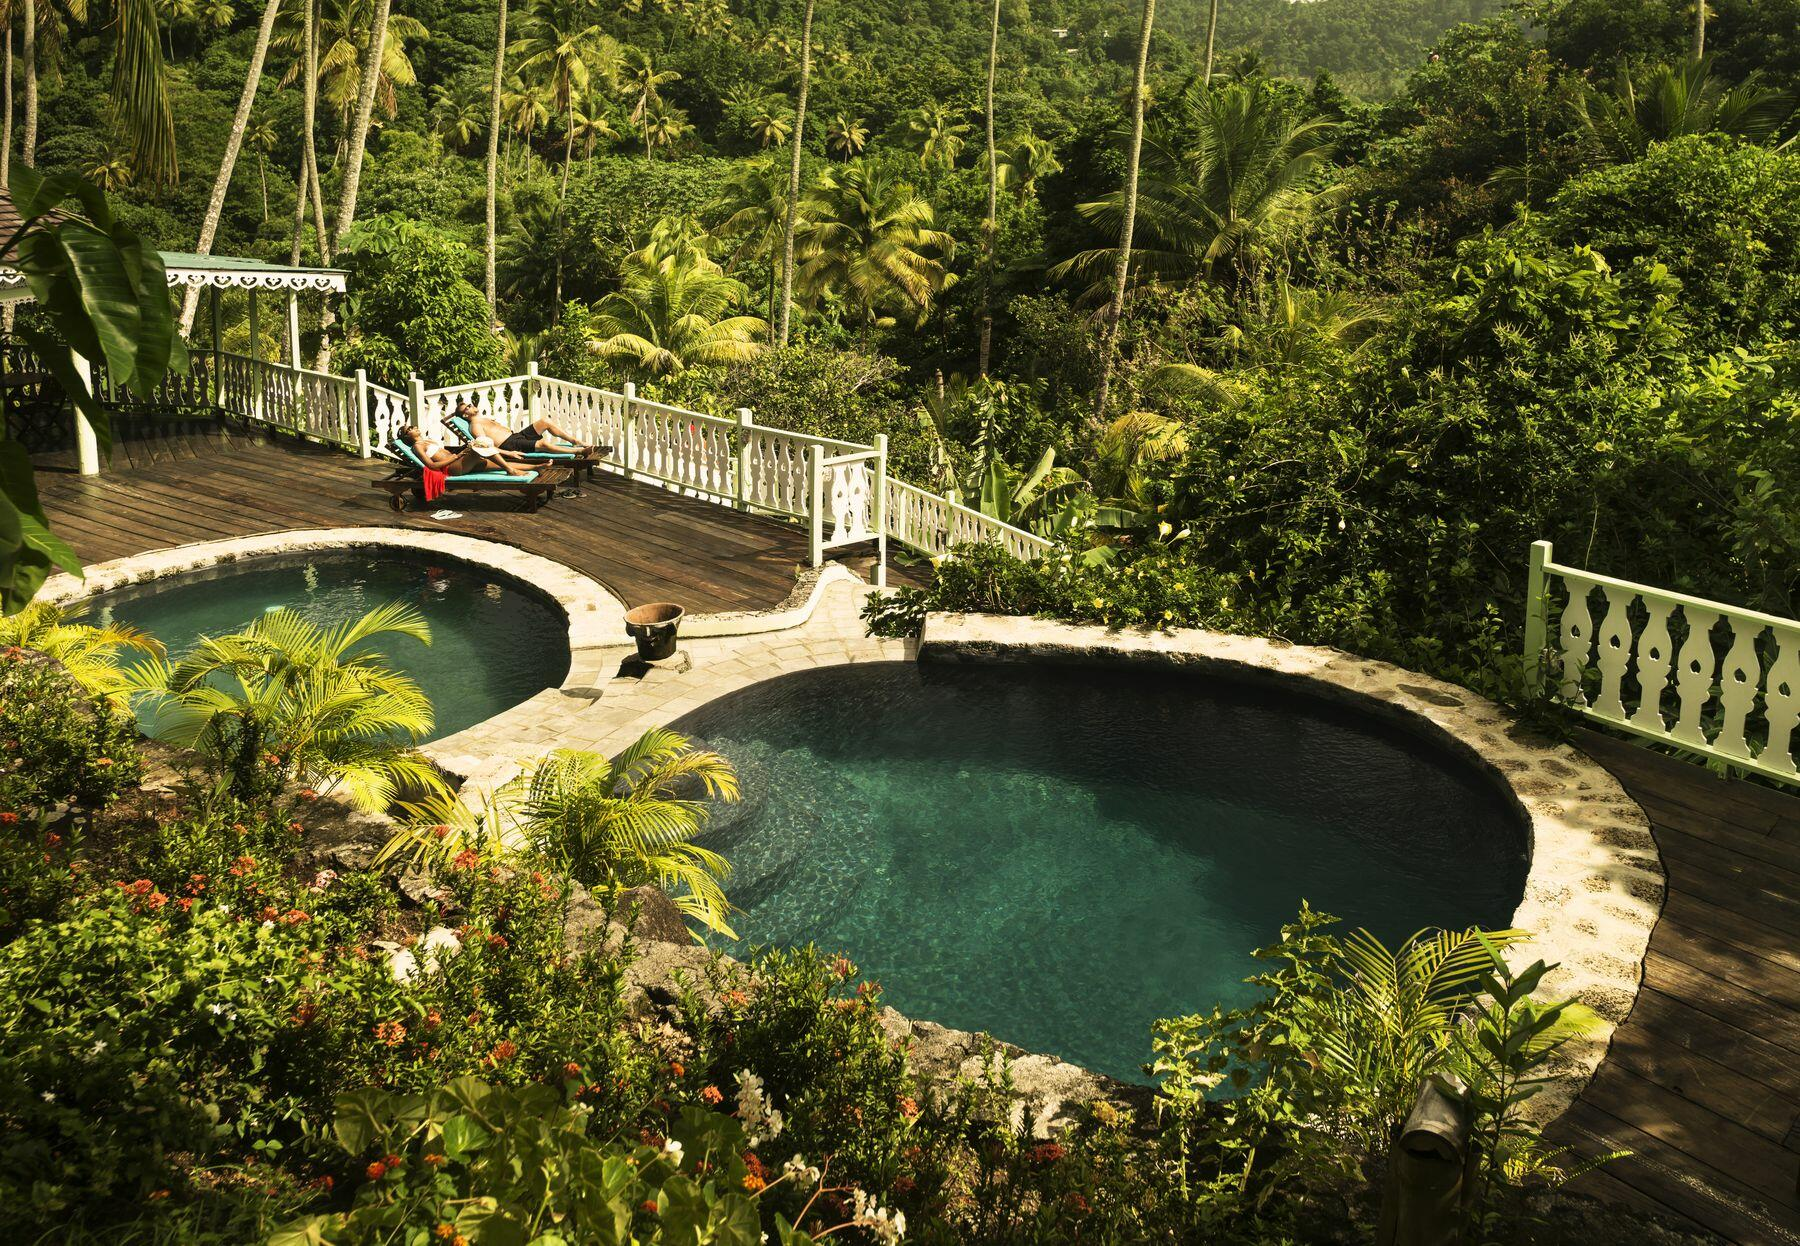 pools in tropical setting